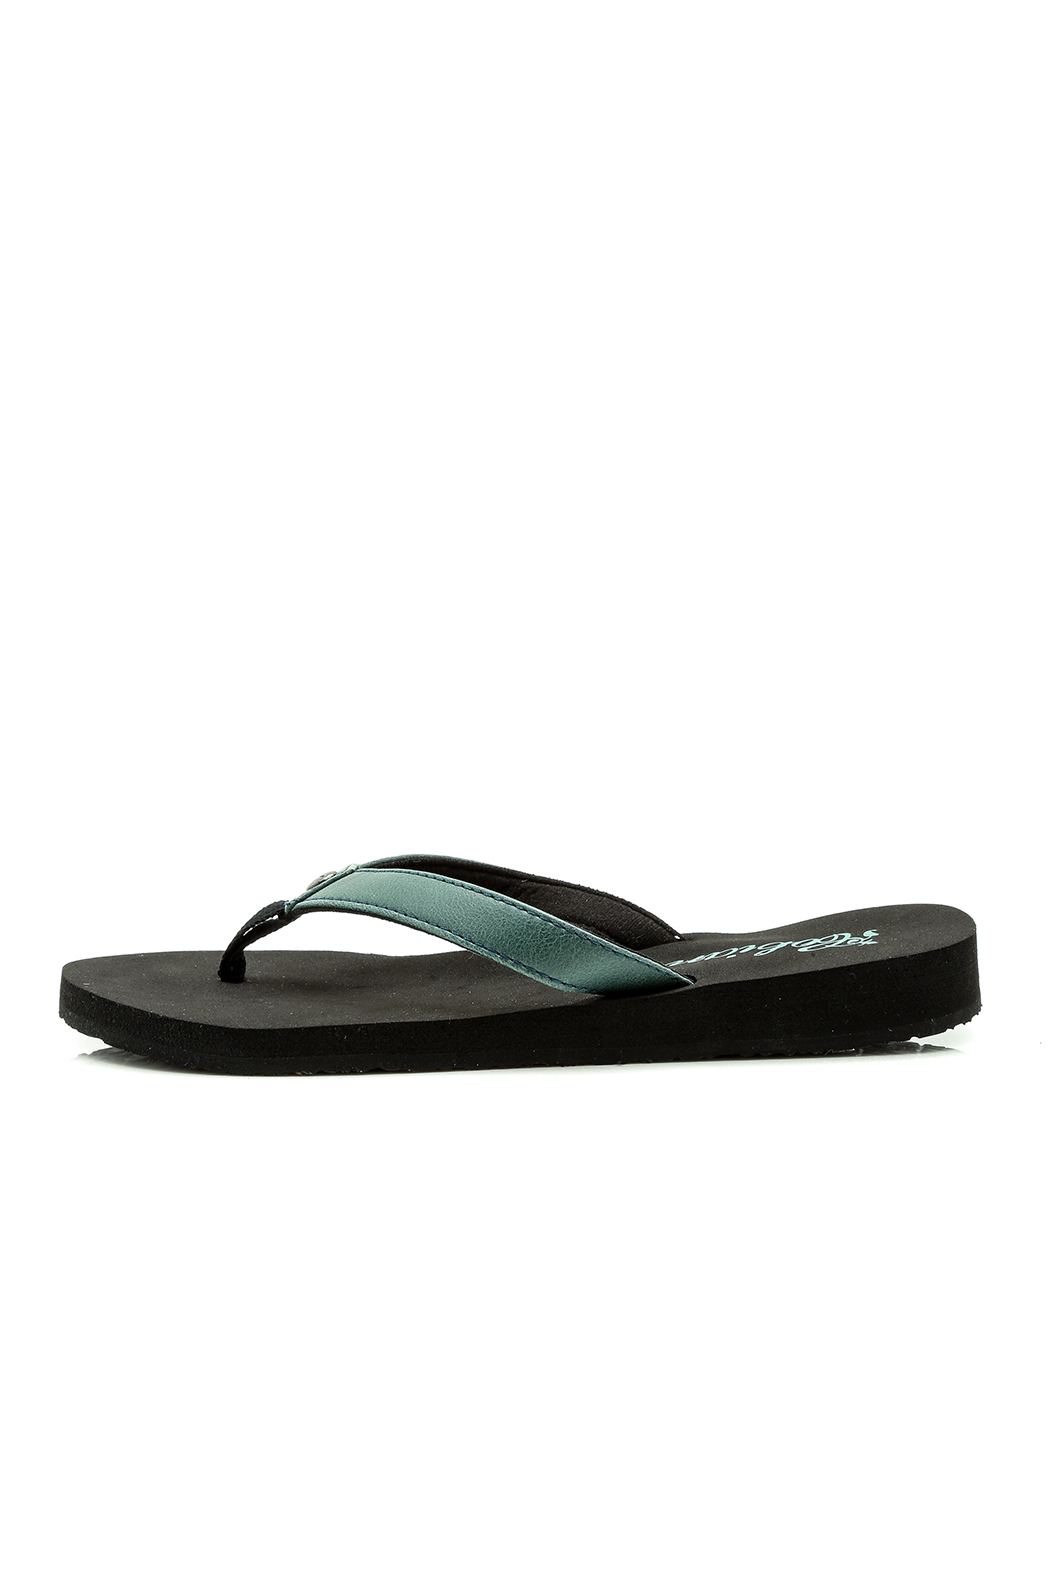 Cobian Skinny Bounce Sandals - Front Cropped Image